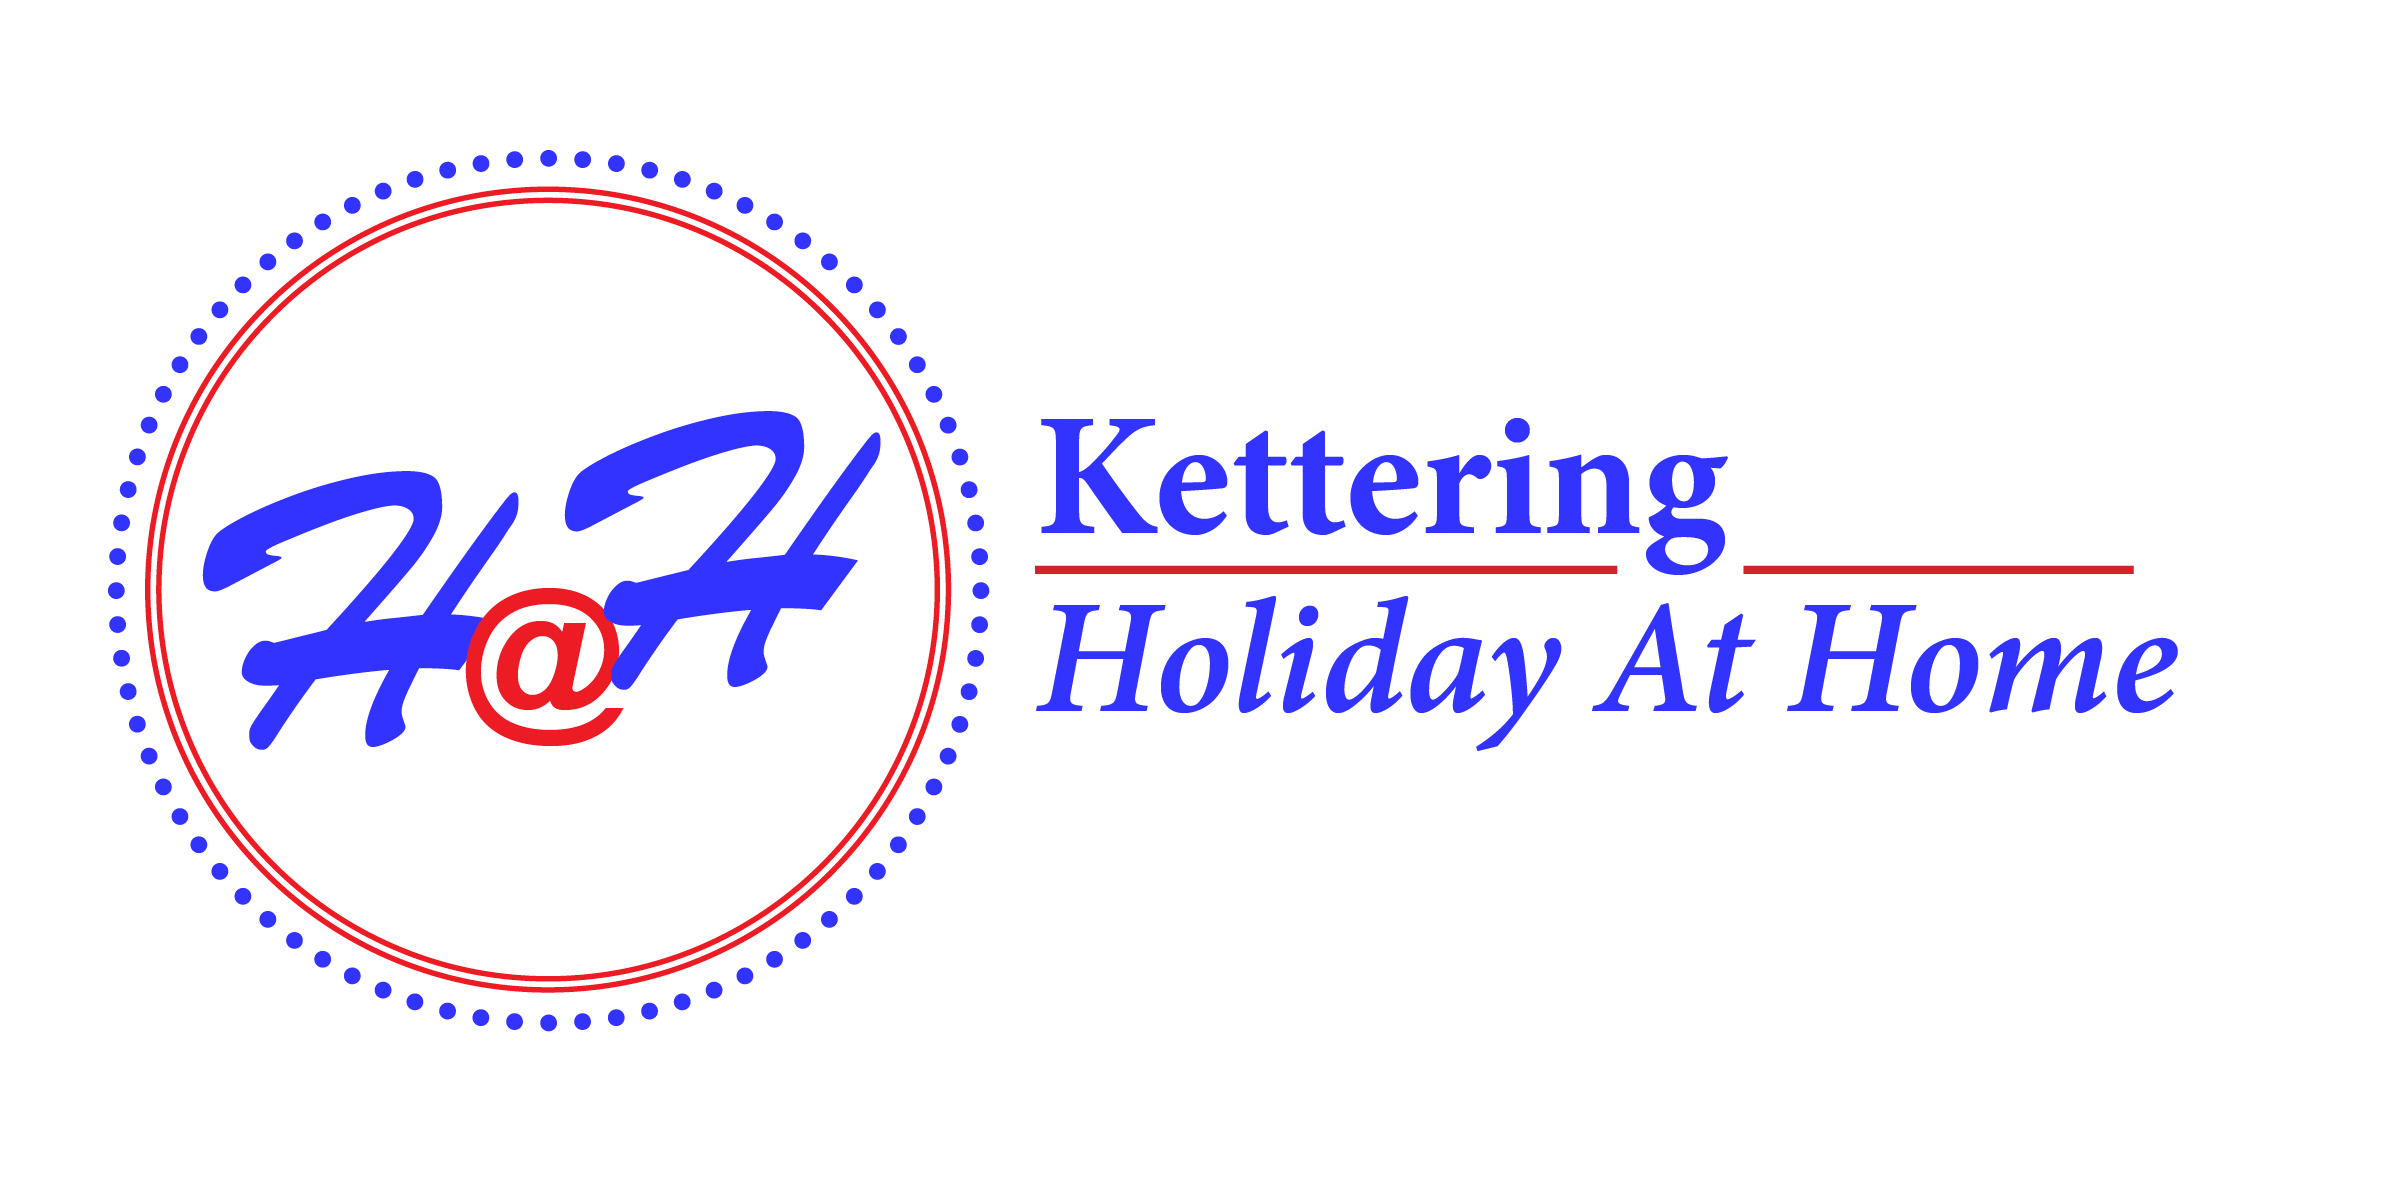 Kettering Holiday At Home